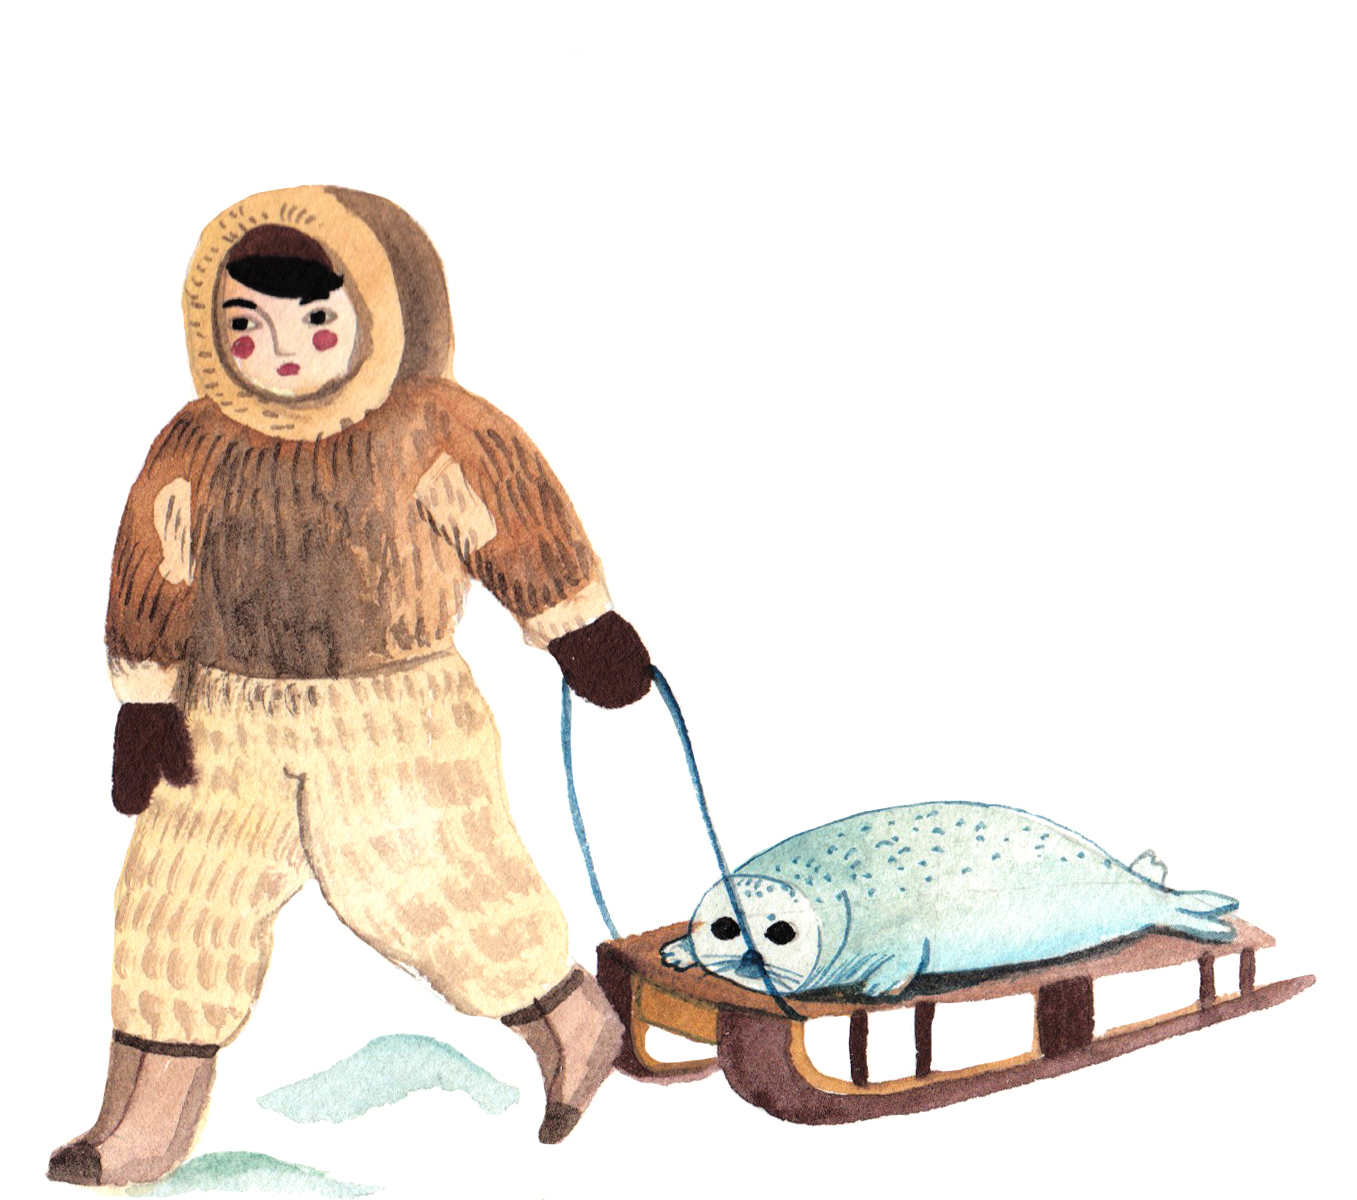 Boy with a seal on a sled © Aitch, from The Blind Boy and the Loon by Angela McAllister